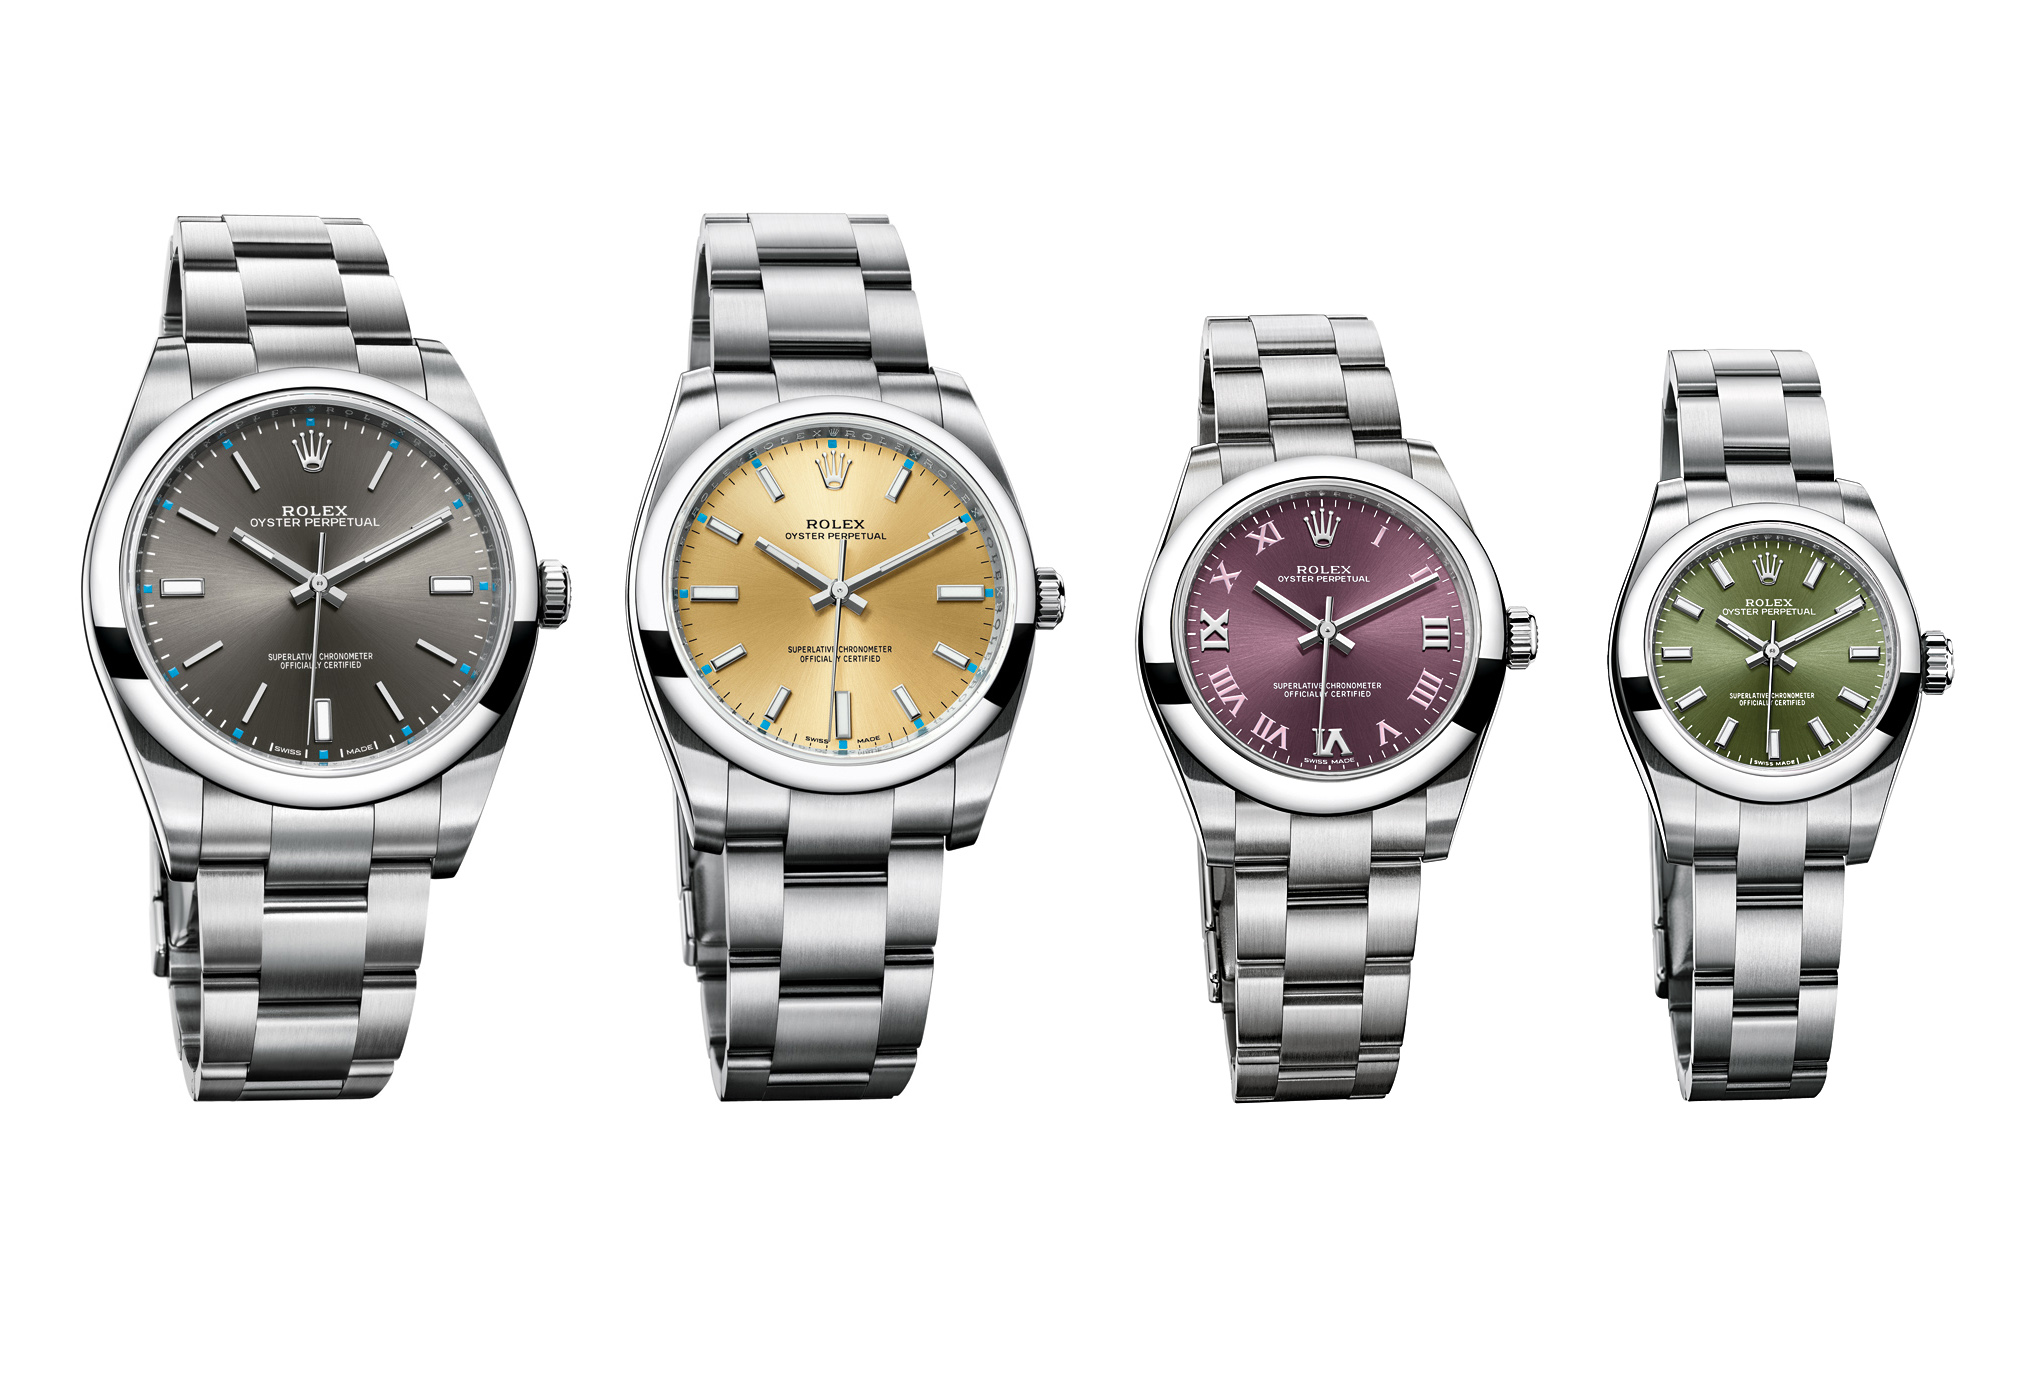 Rolex Oyster Perpetual. Style by Vukota